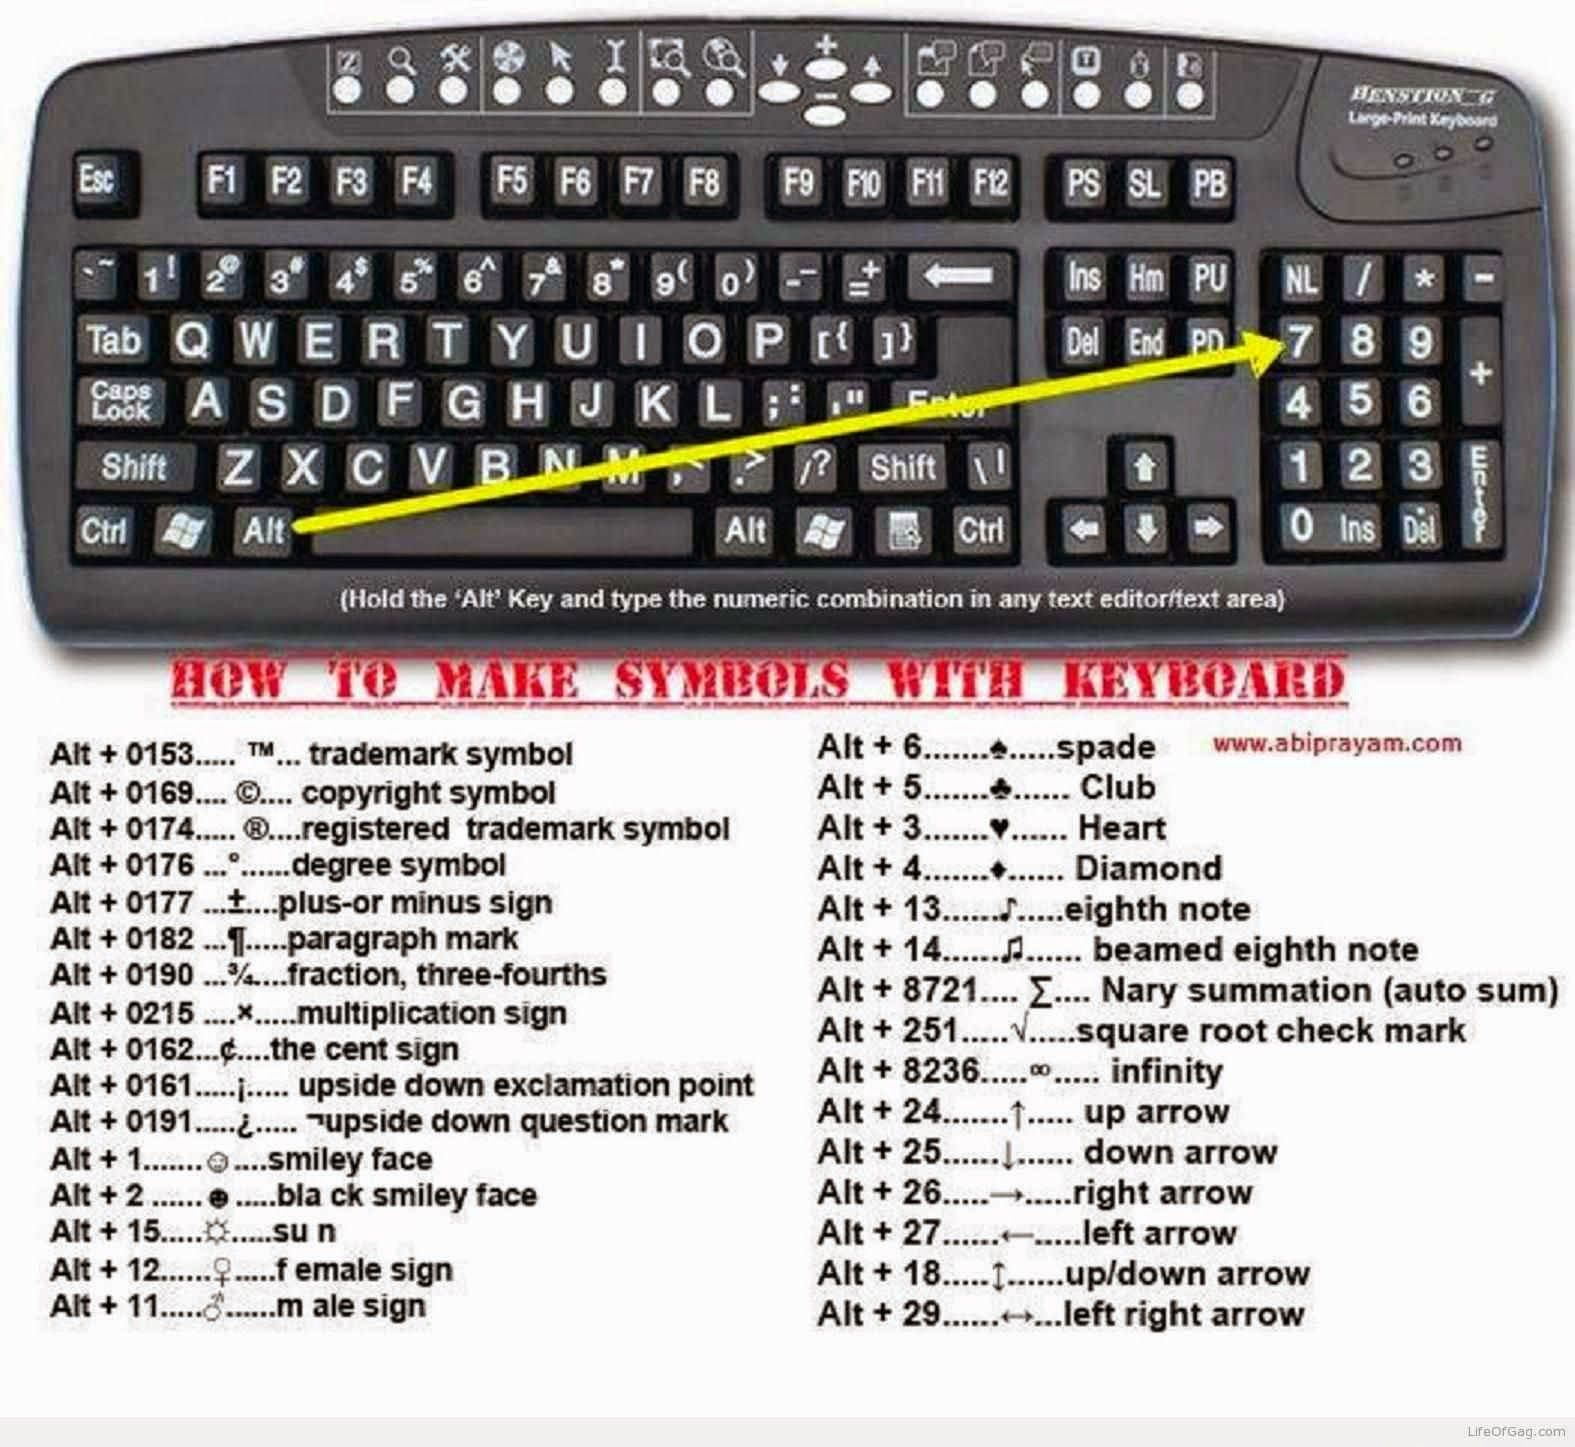 How to make symbols with keyboard electrical engineering world how to make symbols with keyboard electrical engineering world biocorpaavc Images